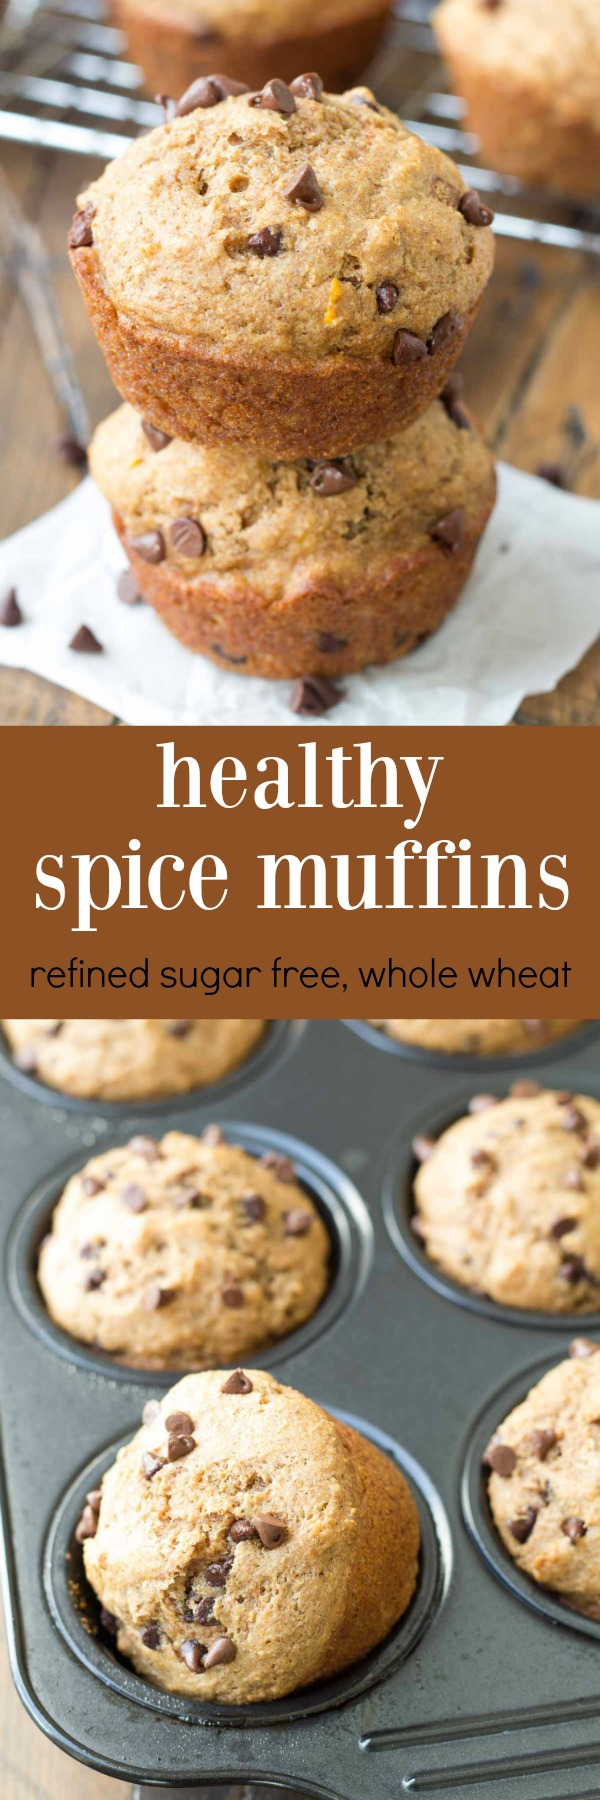 Healthy Spice Muffins with Chai (whole wheat, refined sugar free). These easy muffins make a quick breakfast or snack! You'll love the hint of orange in these!